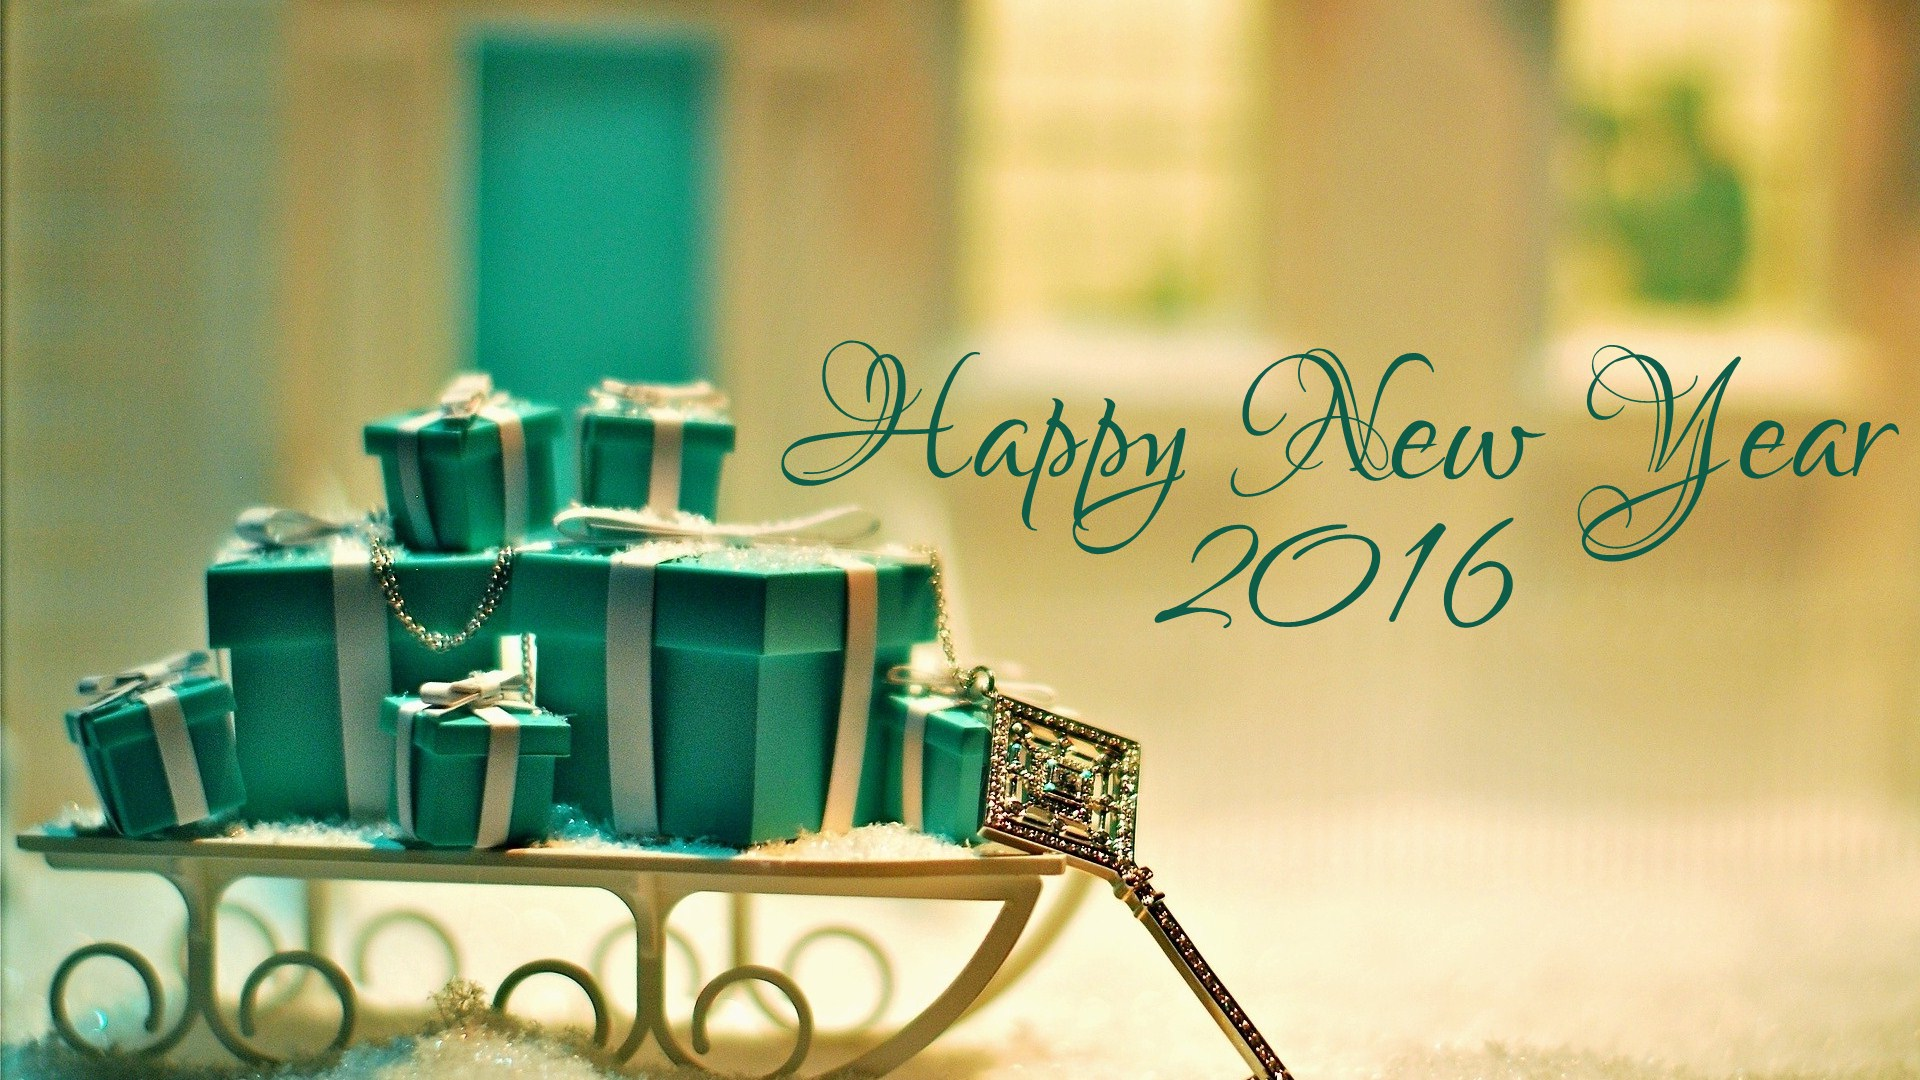 Year 2016 SMS Wishes And Desktop Wallpapers Download And Share 1920x1080